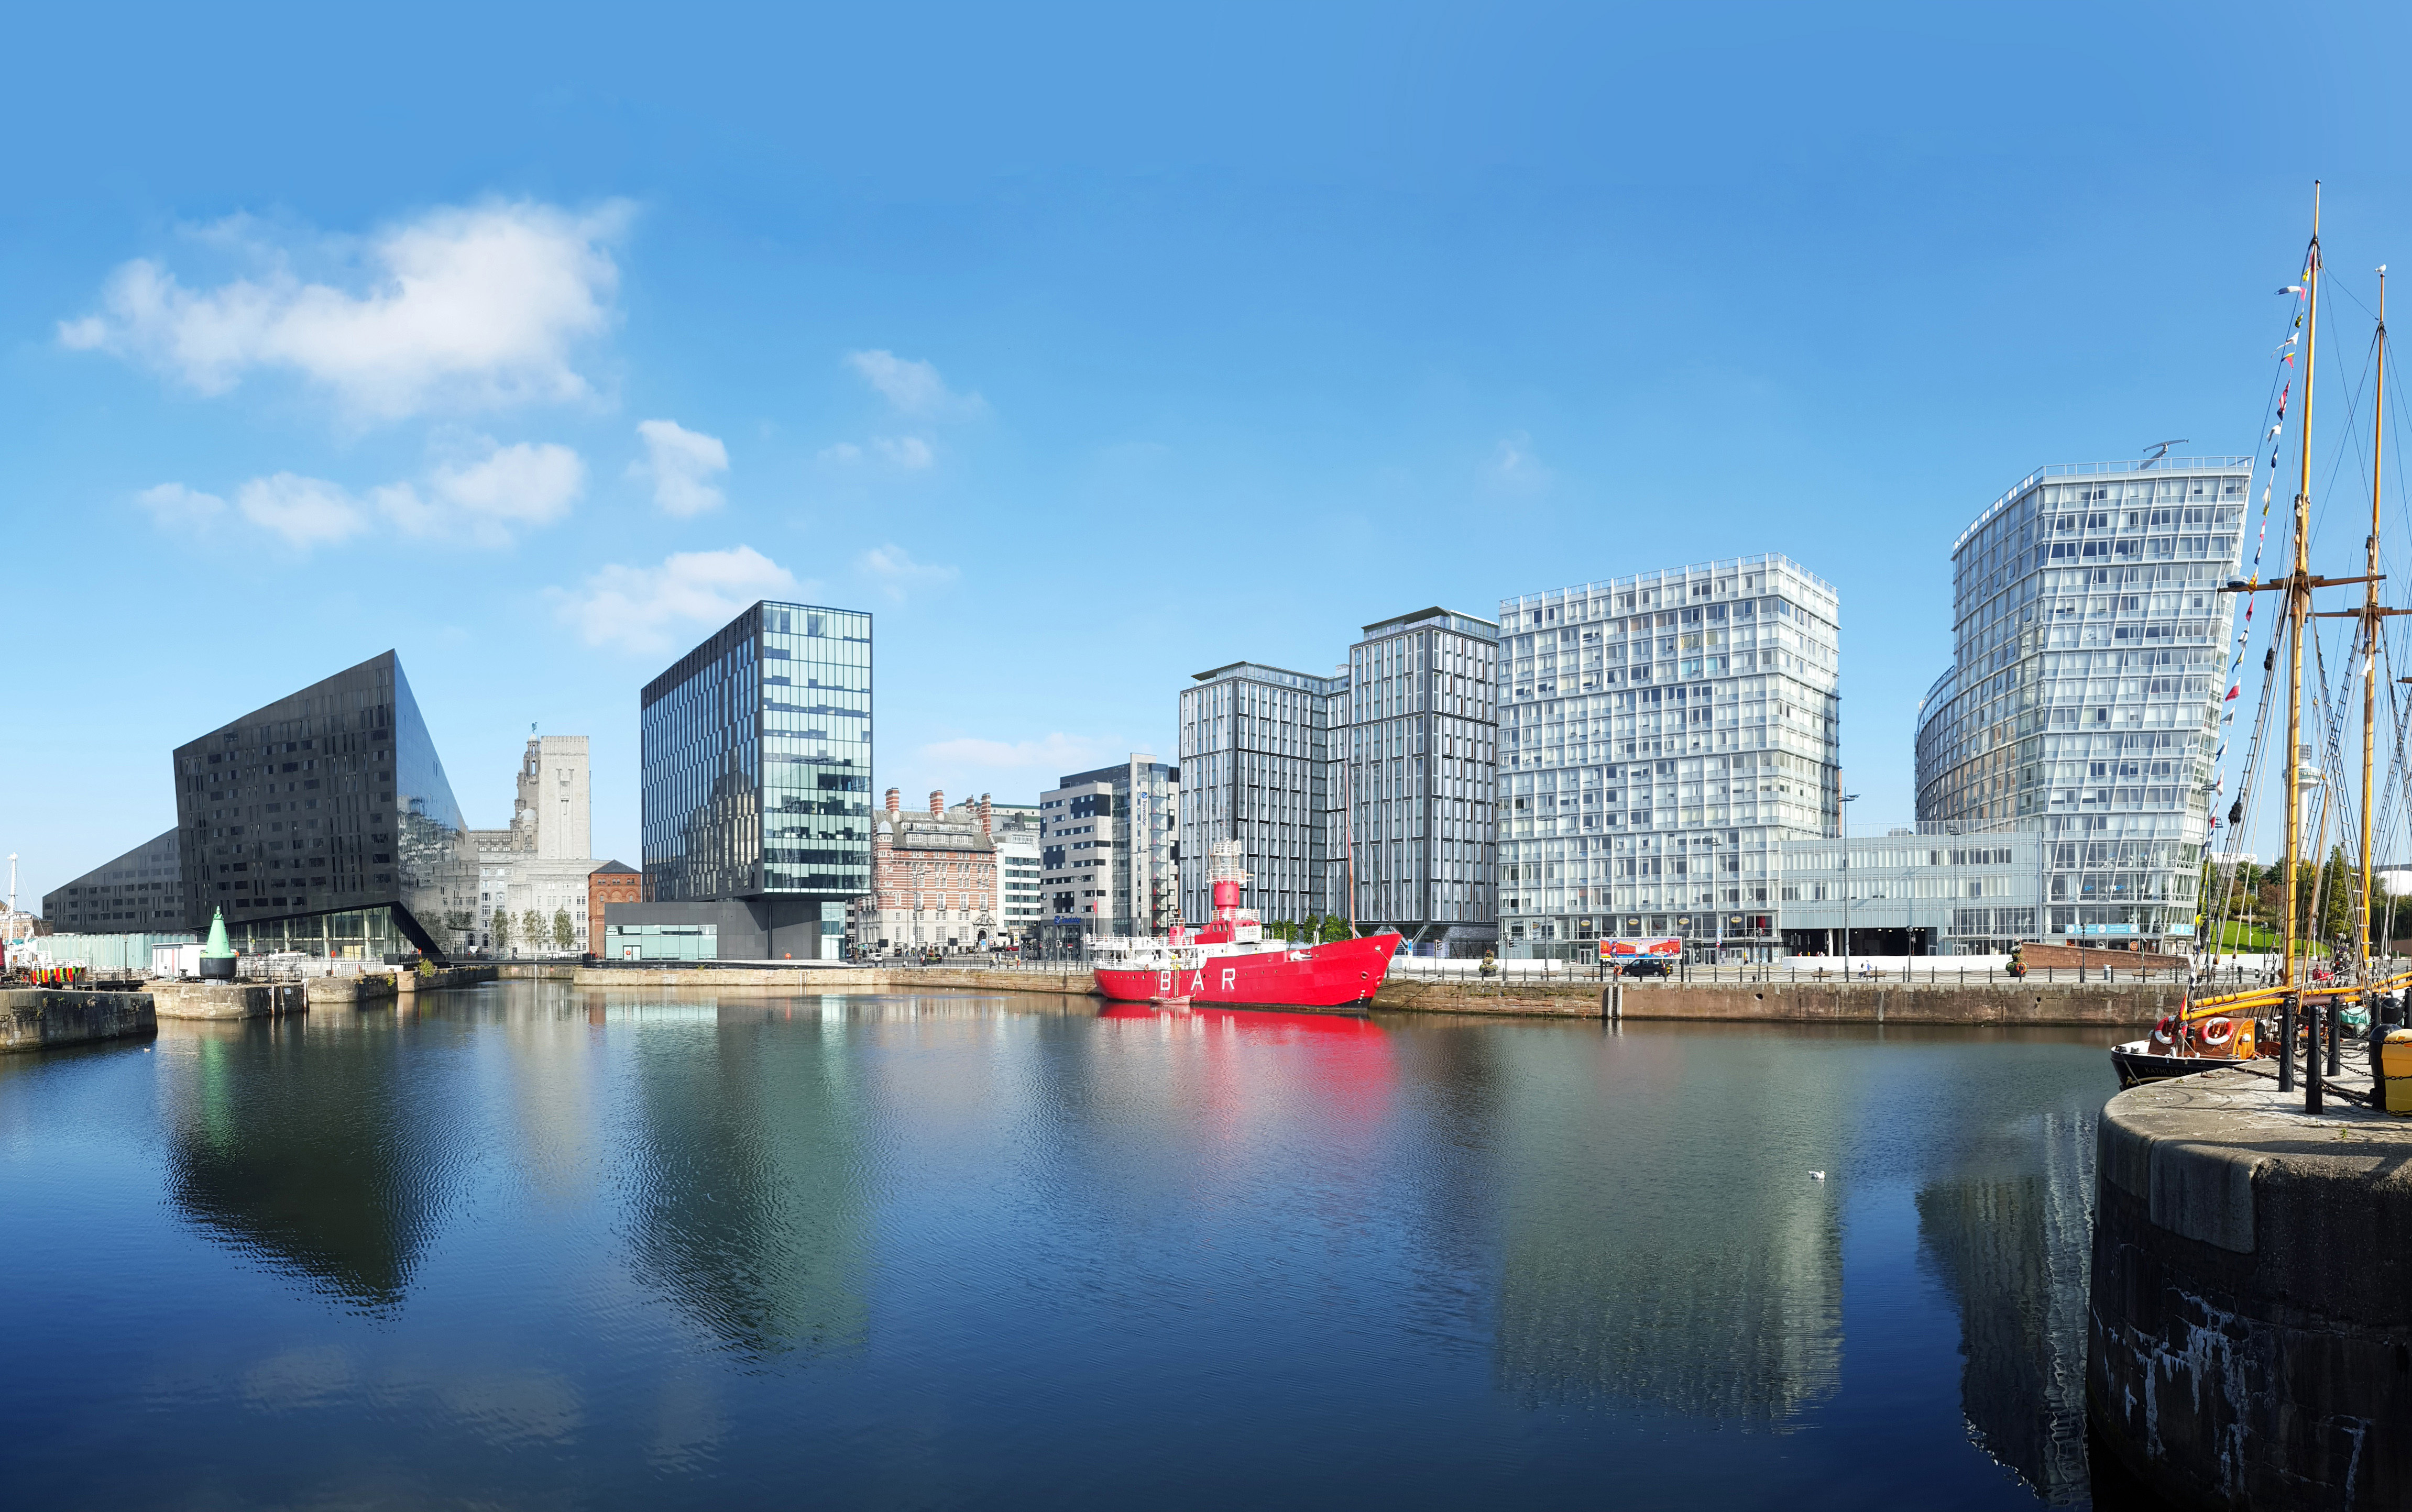 We've opened a new office in Liverpool's Derby Square image